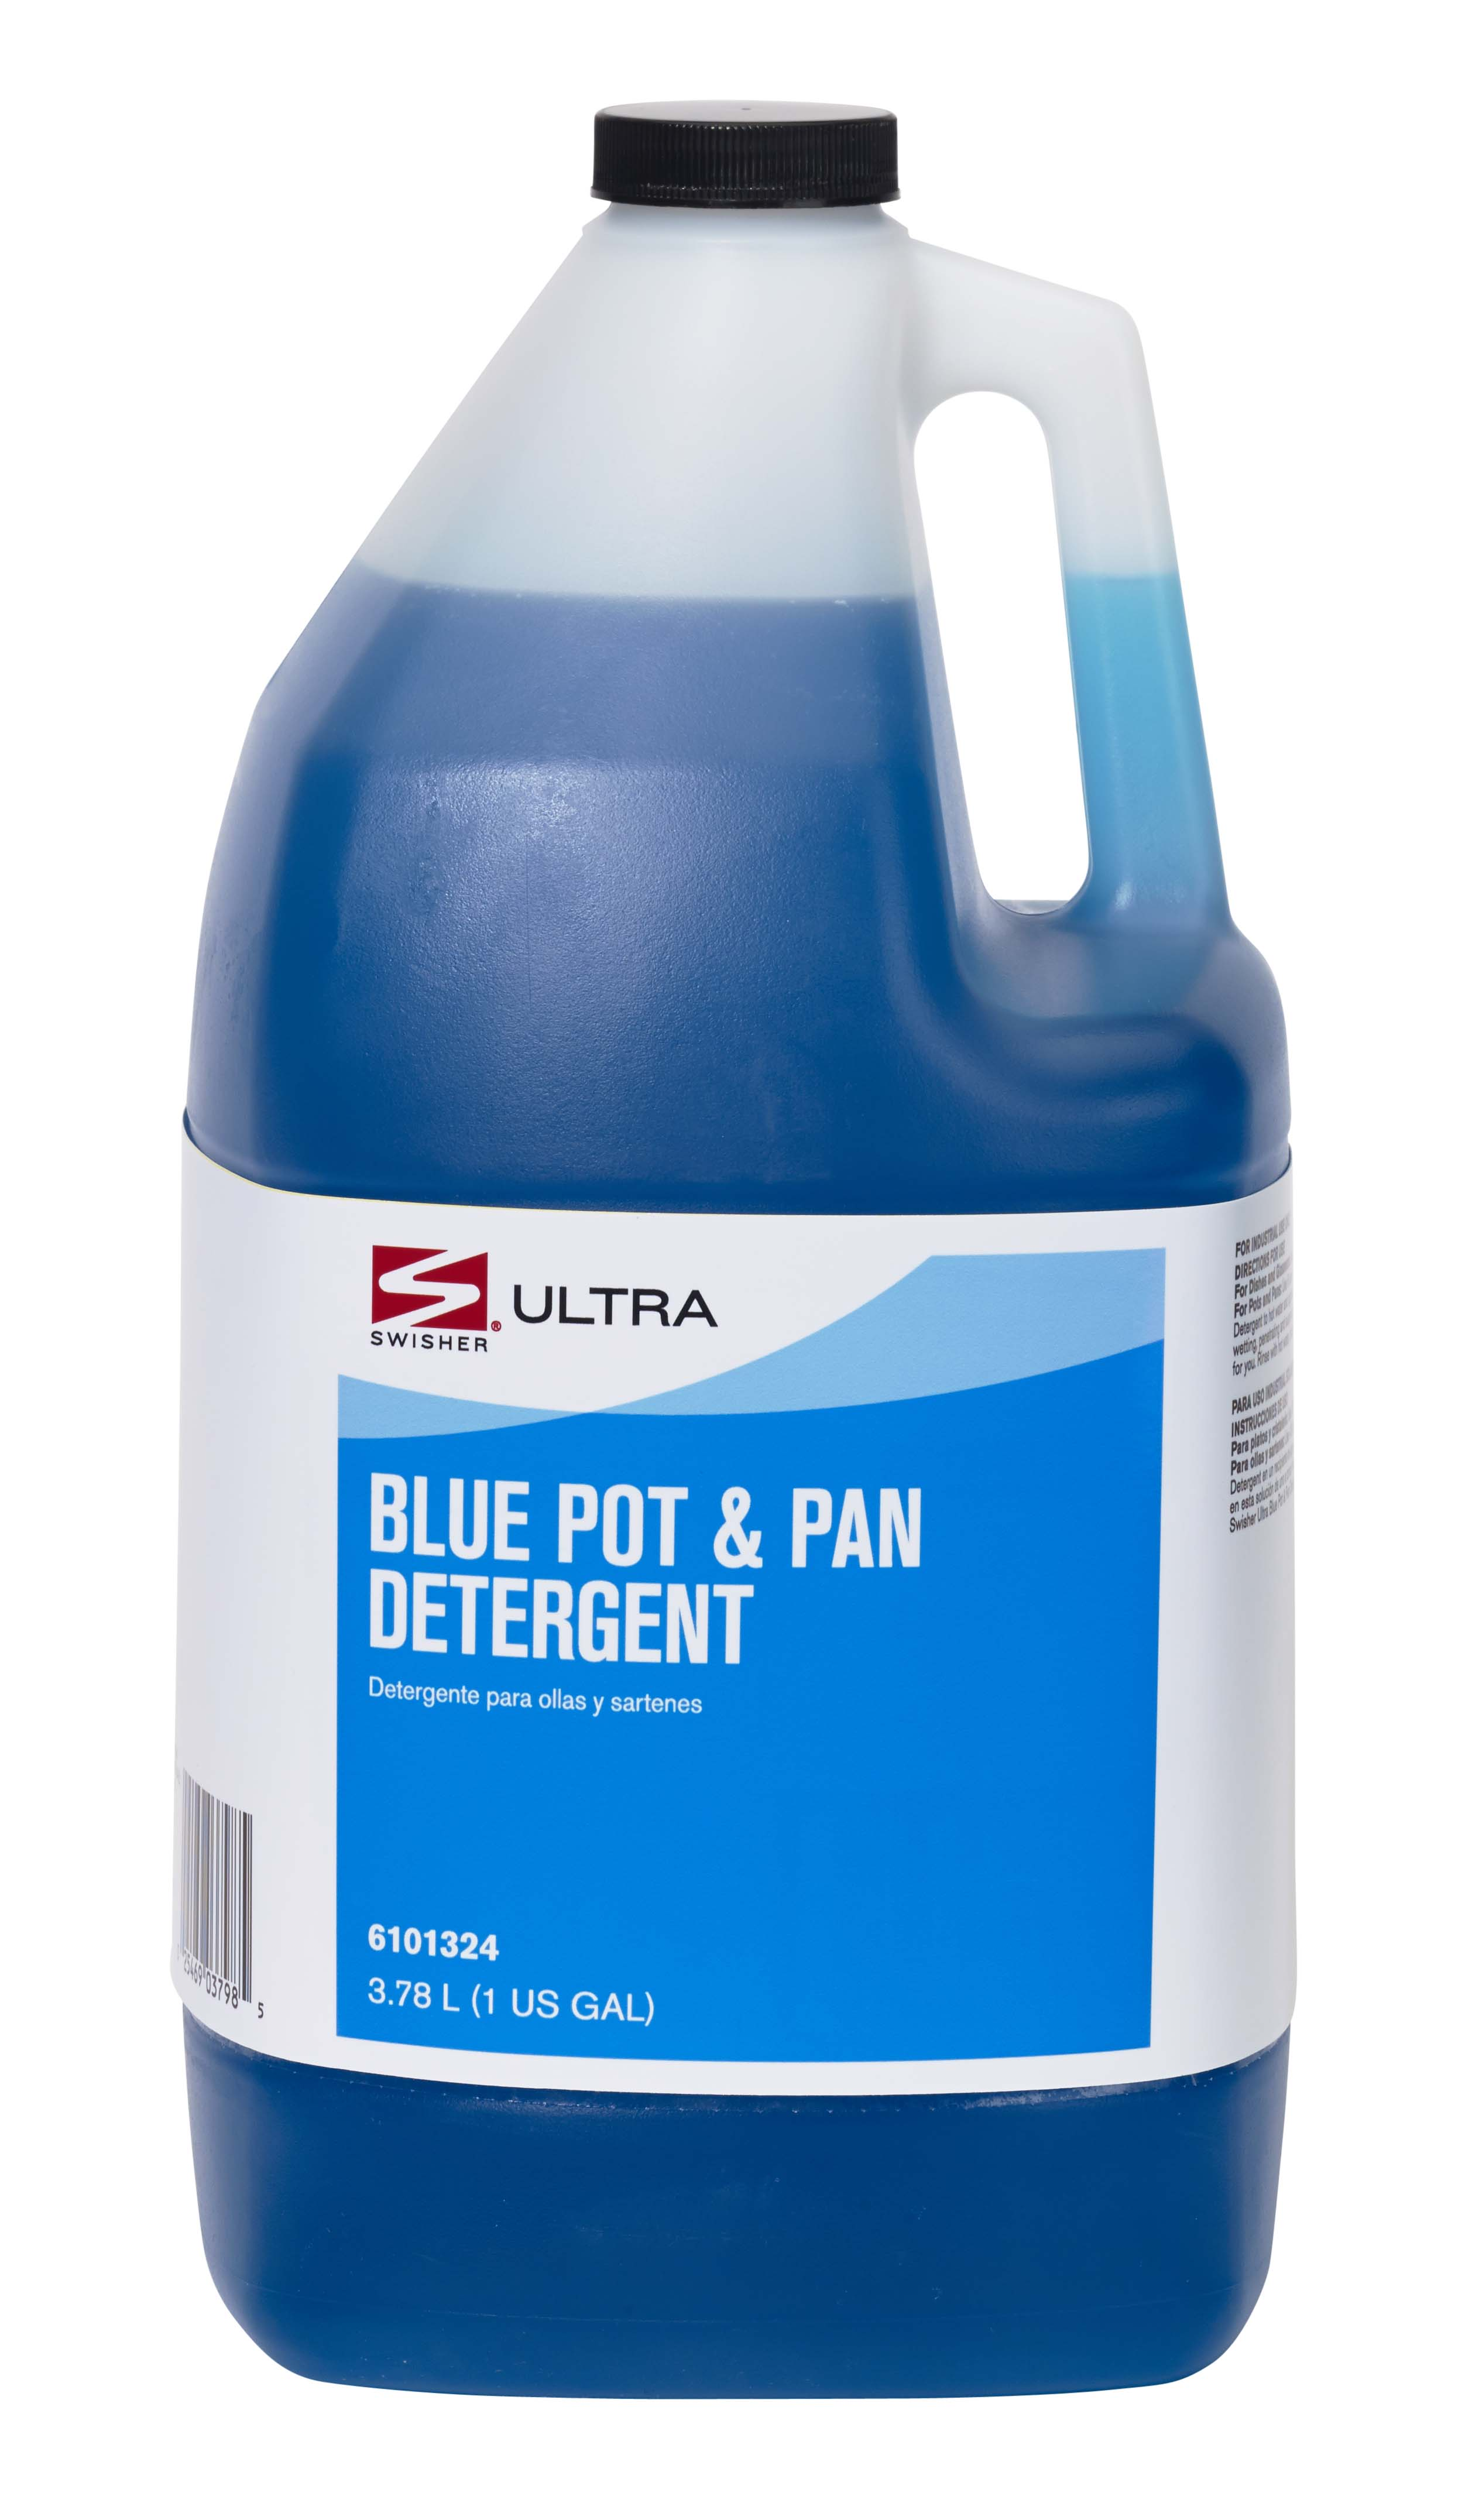 Swisher Ultra Blue Pot and Pan Detergent